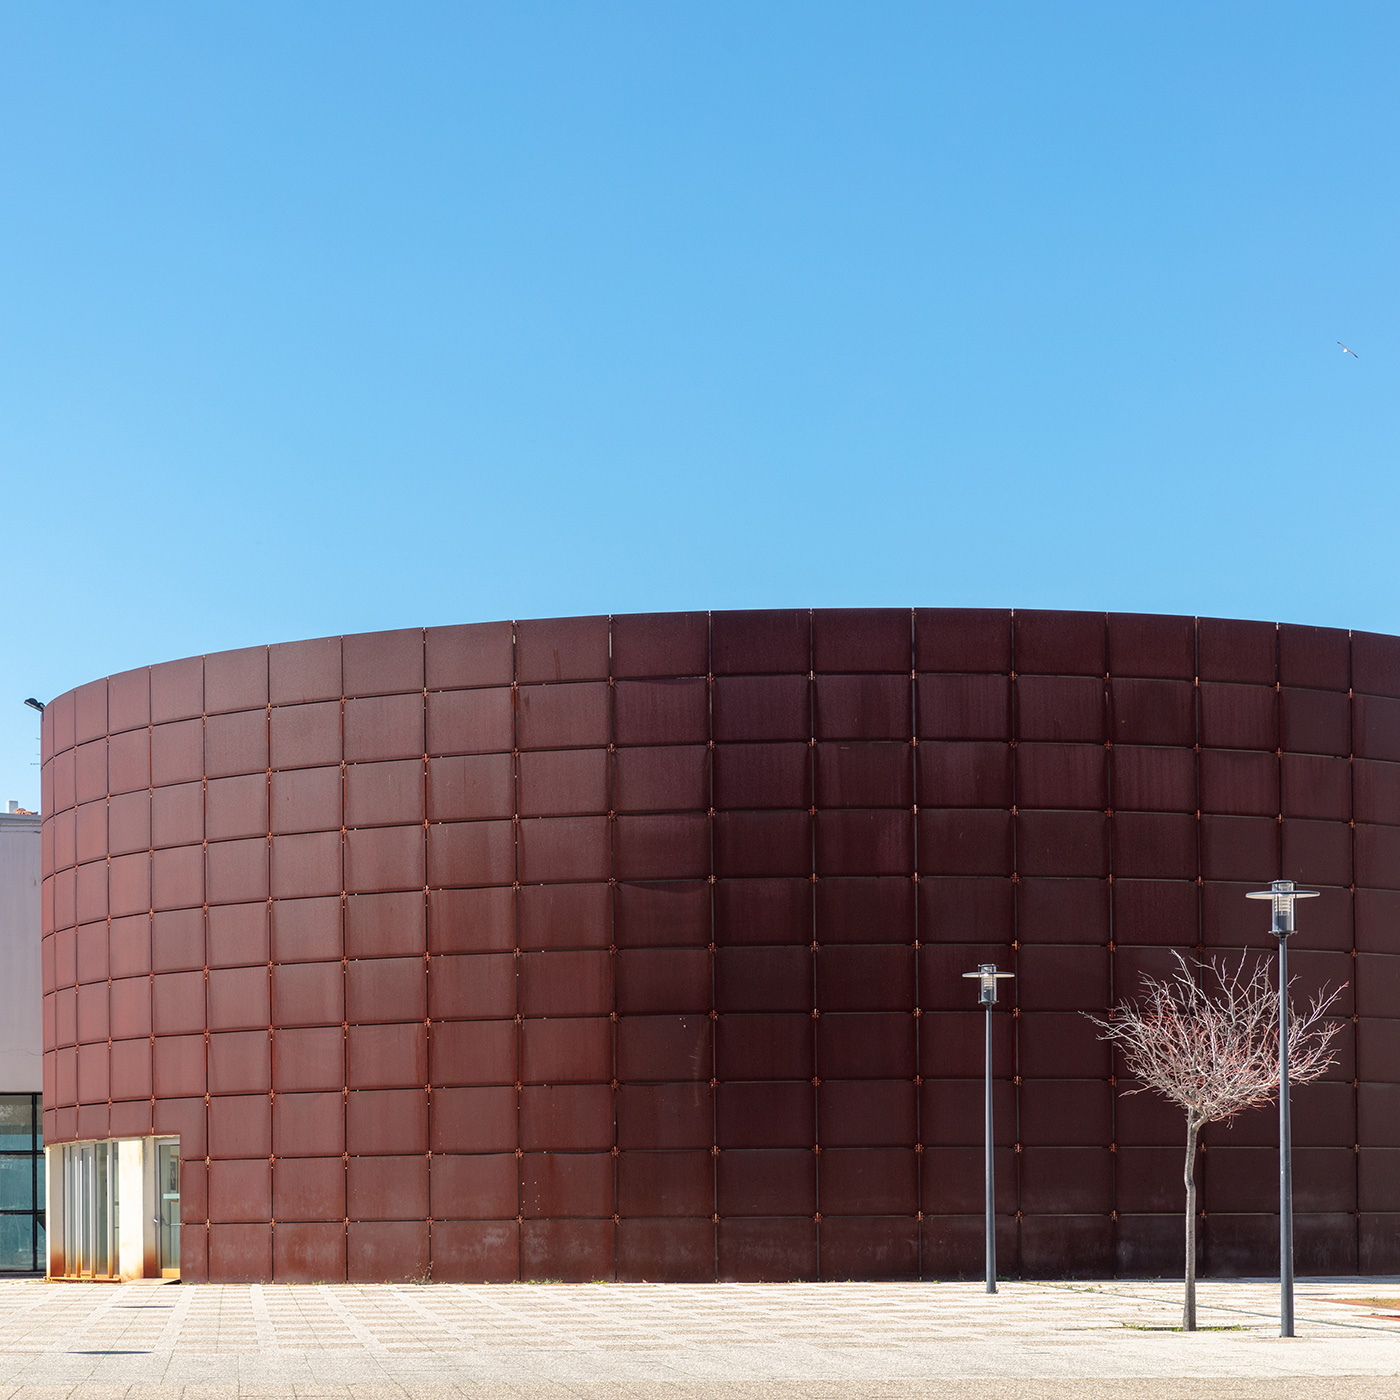 Lisbon School of Health Technology . Location: Lisbon, Portugal . Architect: unknown to me